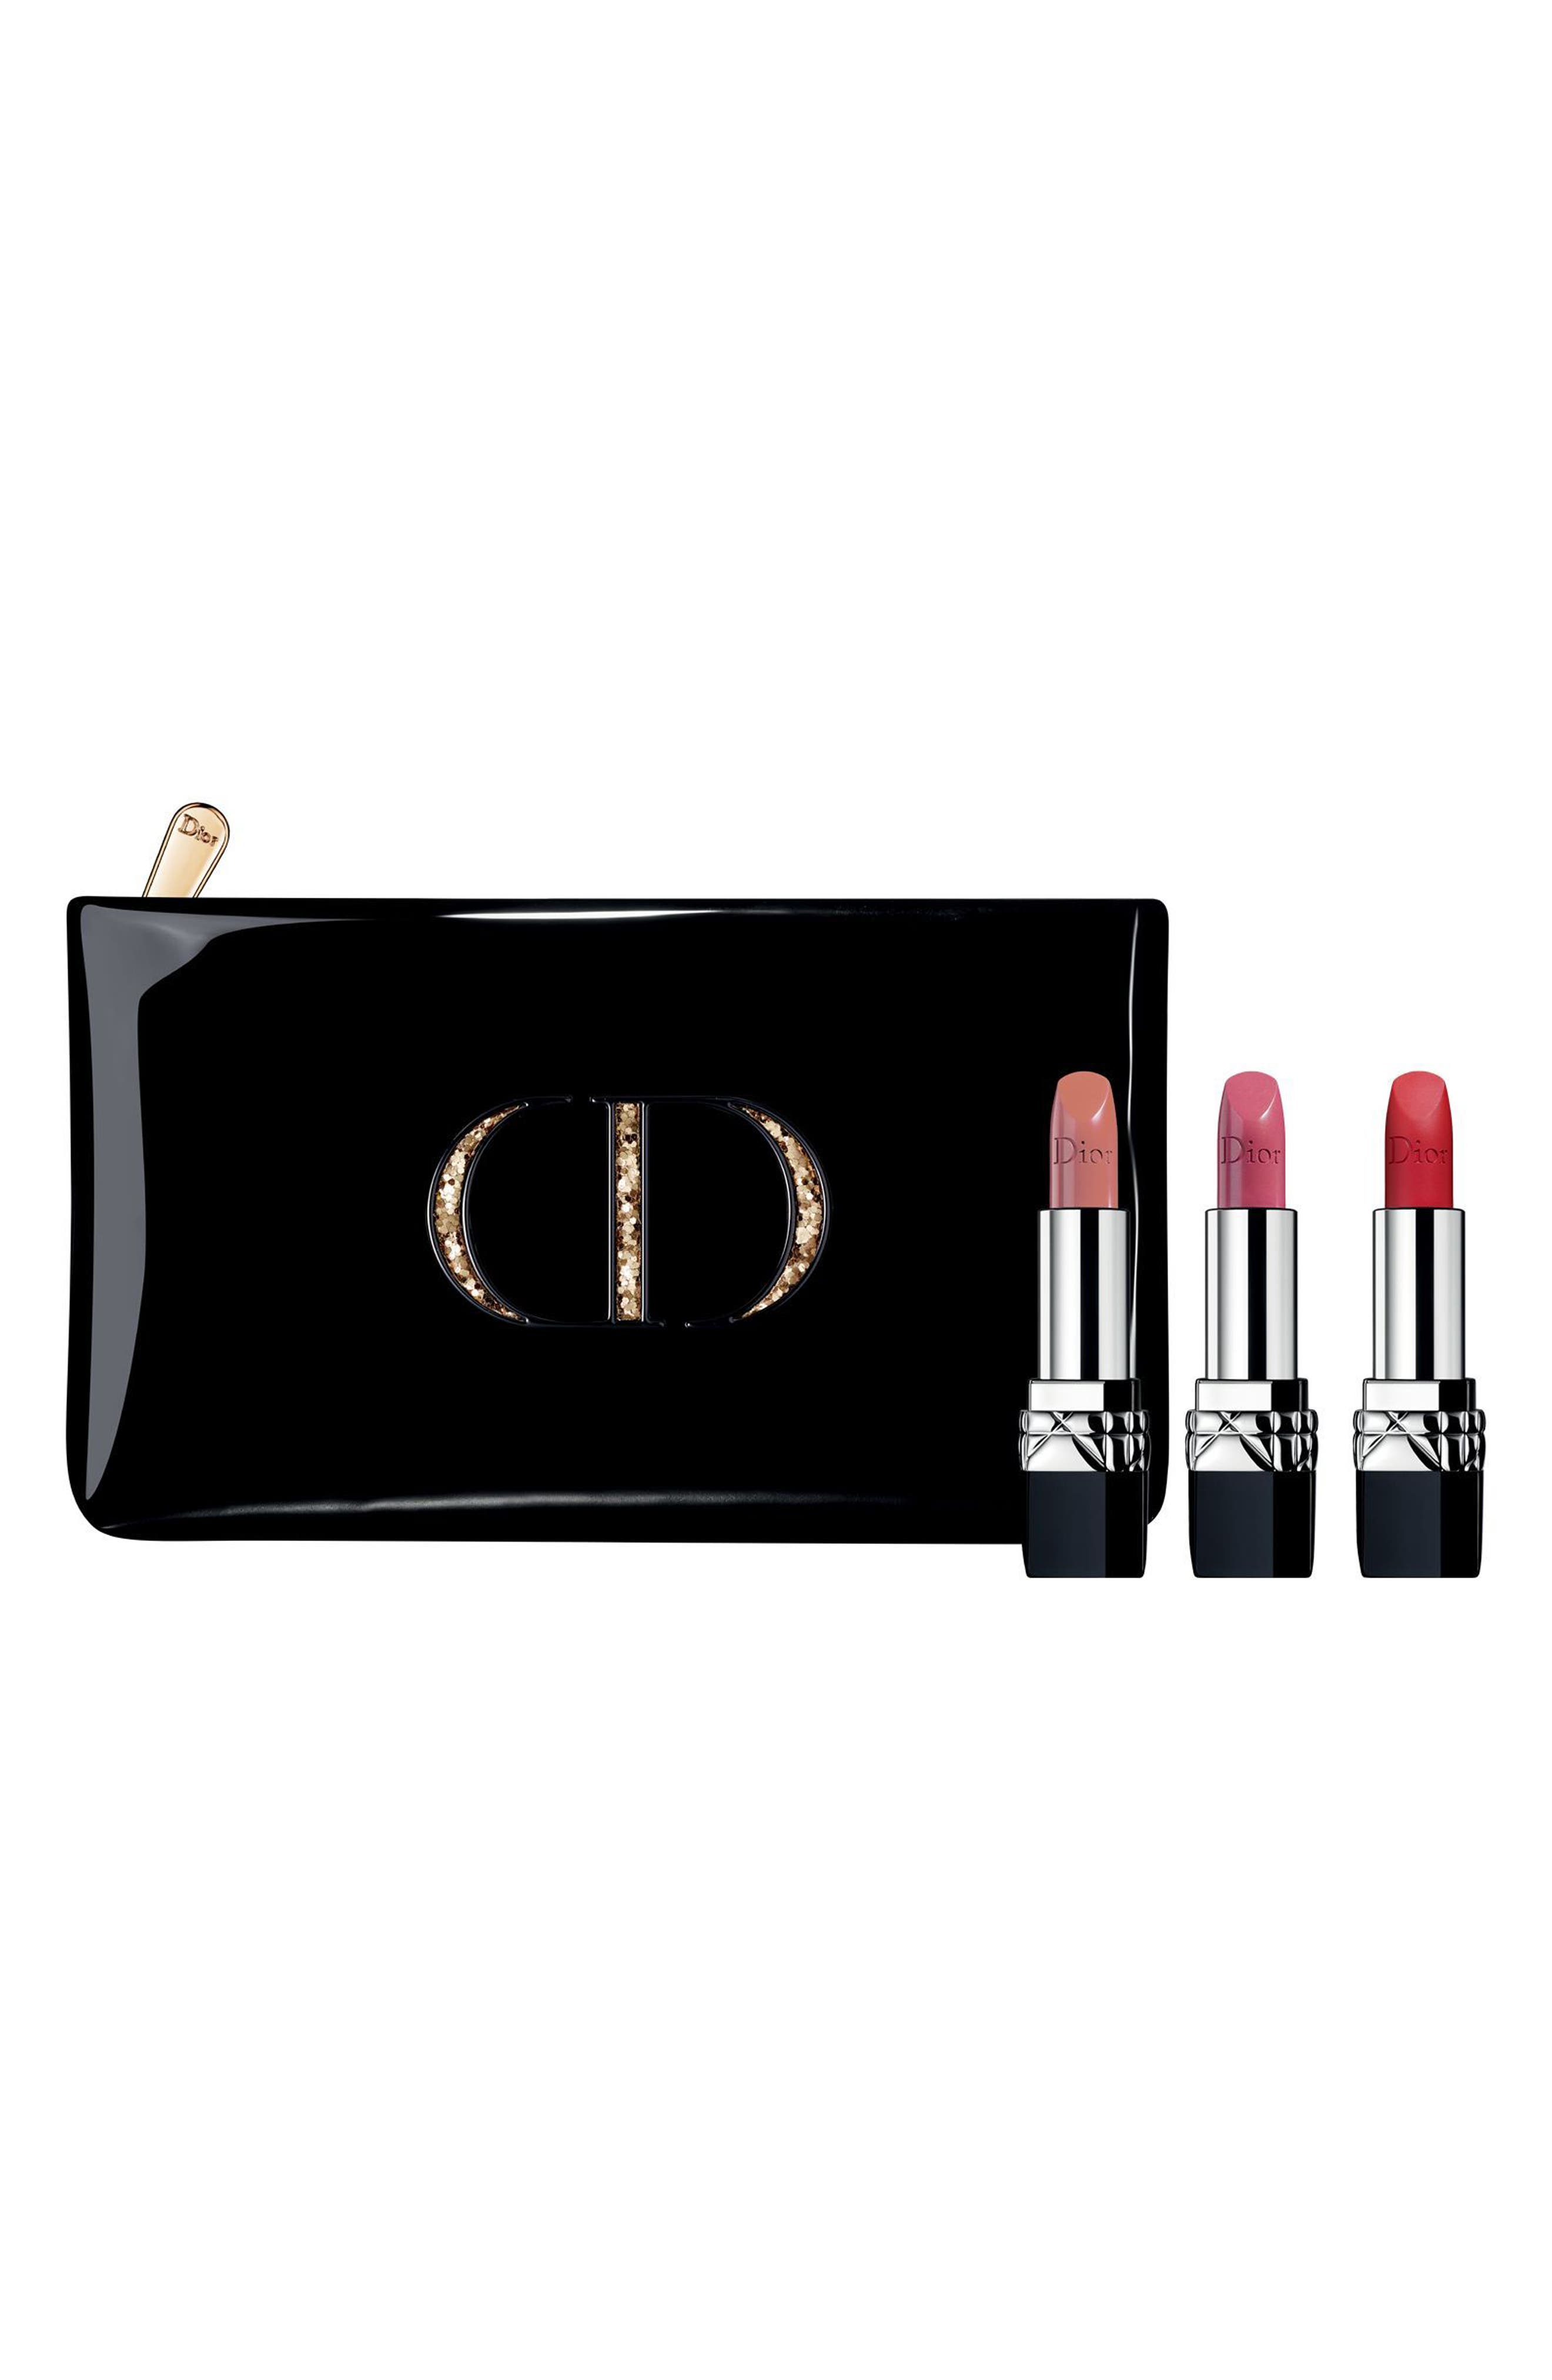 Alternate Image 1 Selected - Dior Rouge Dior Lipstick Trio